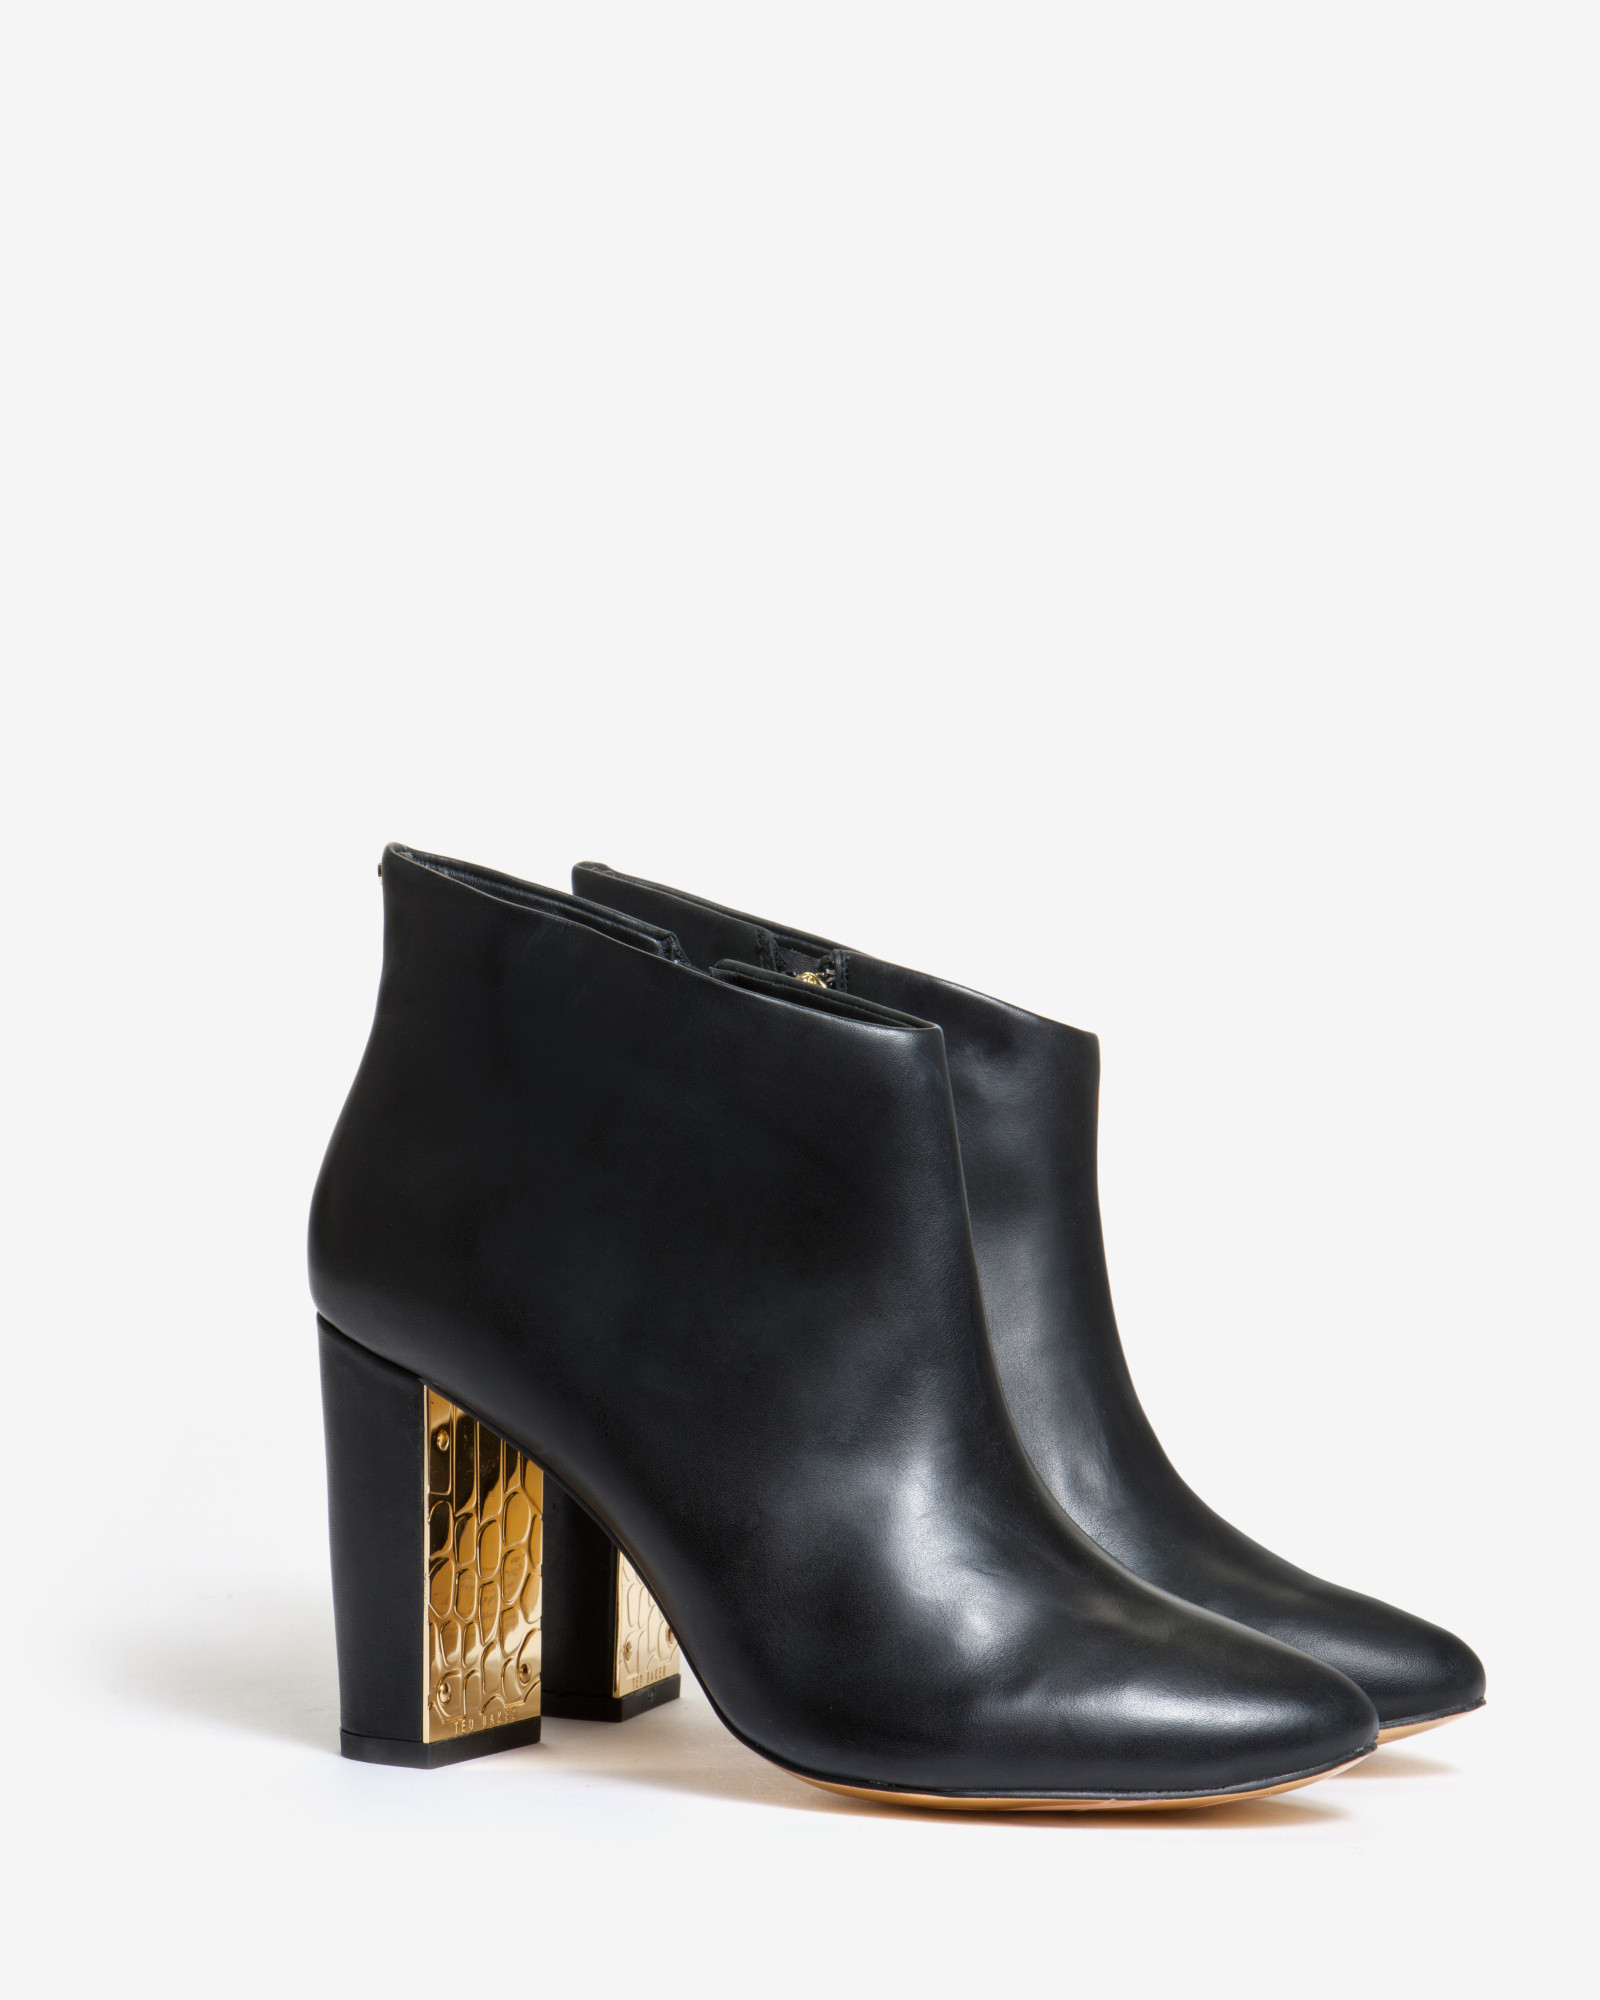 860a1234e0016 gifts Ted Baker Boots - oukas.info